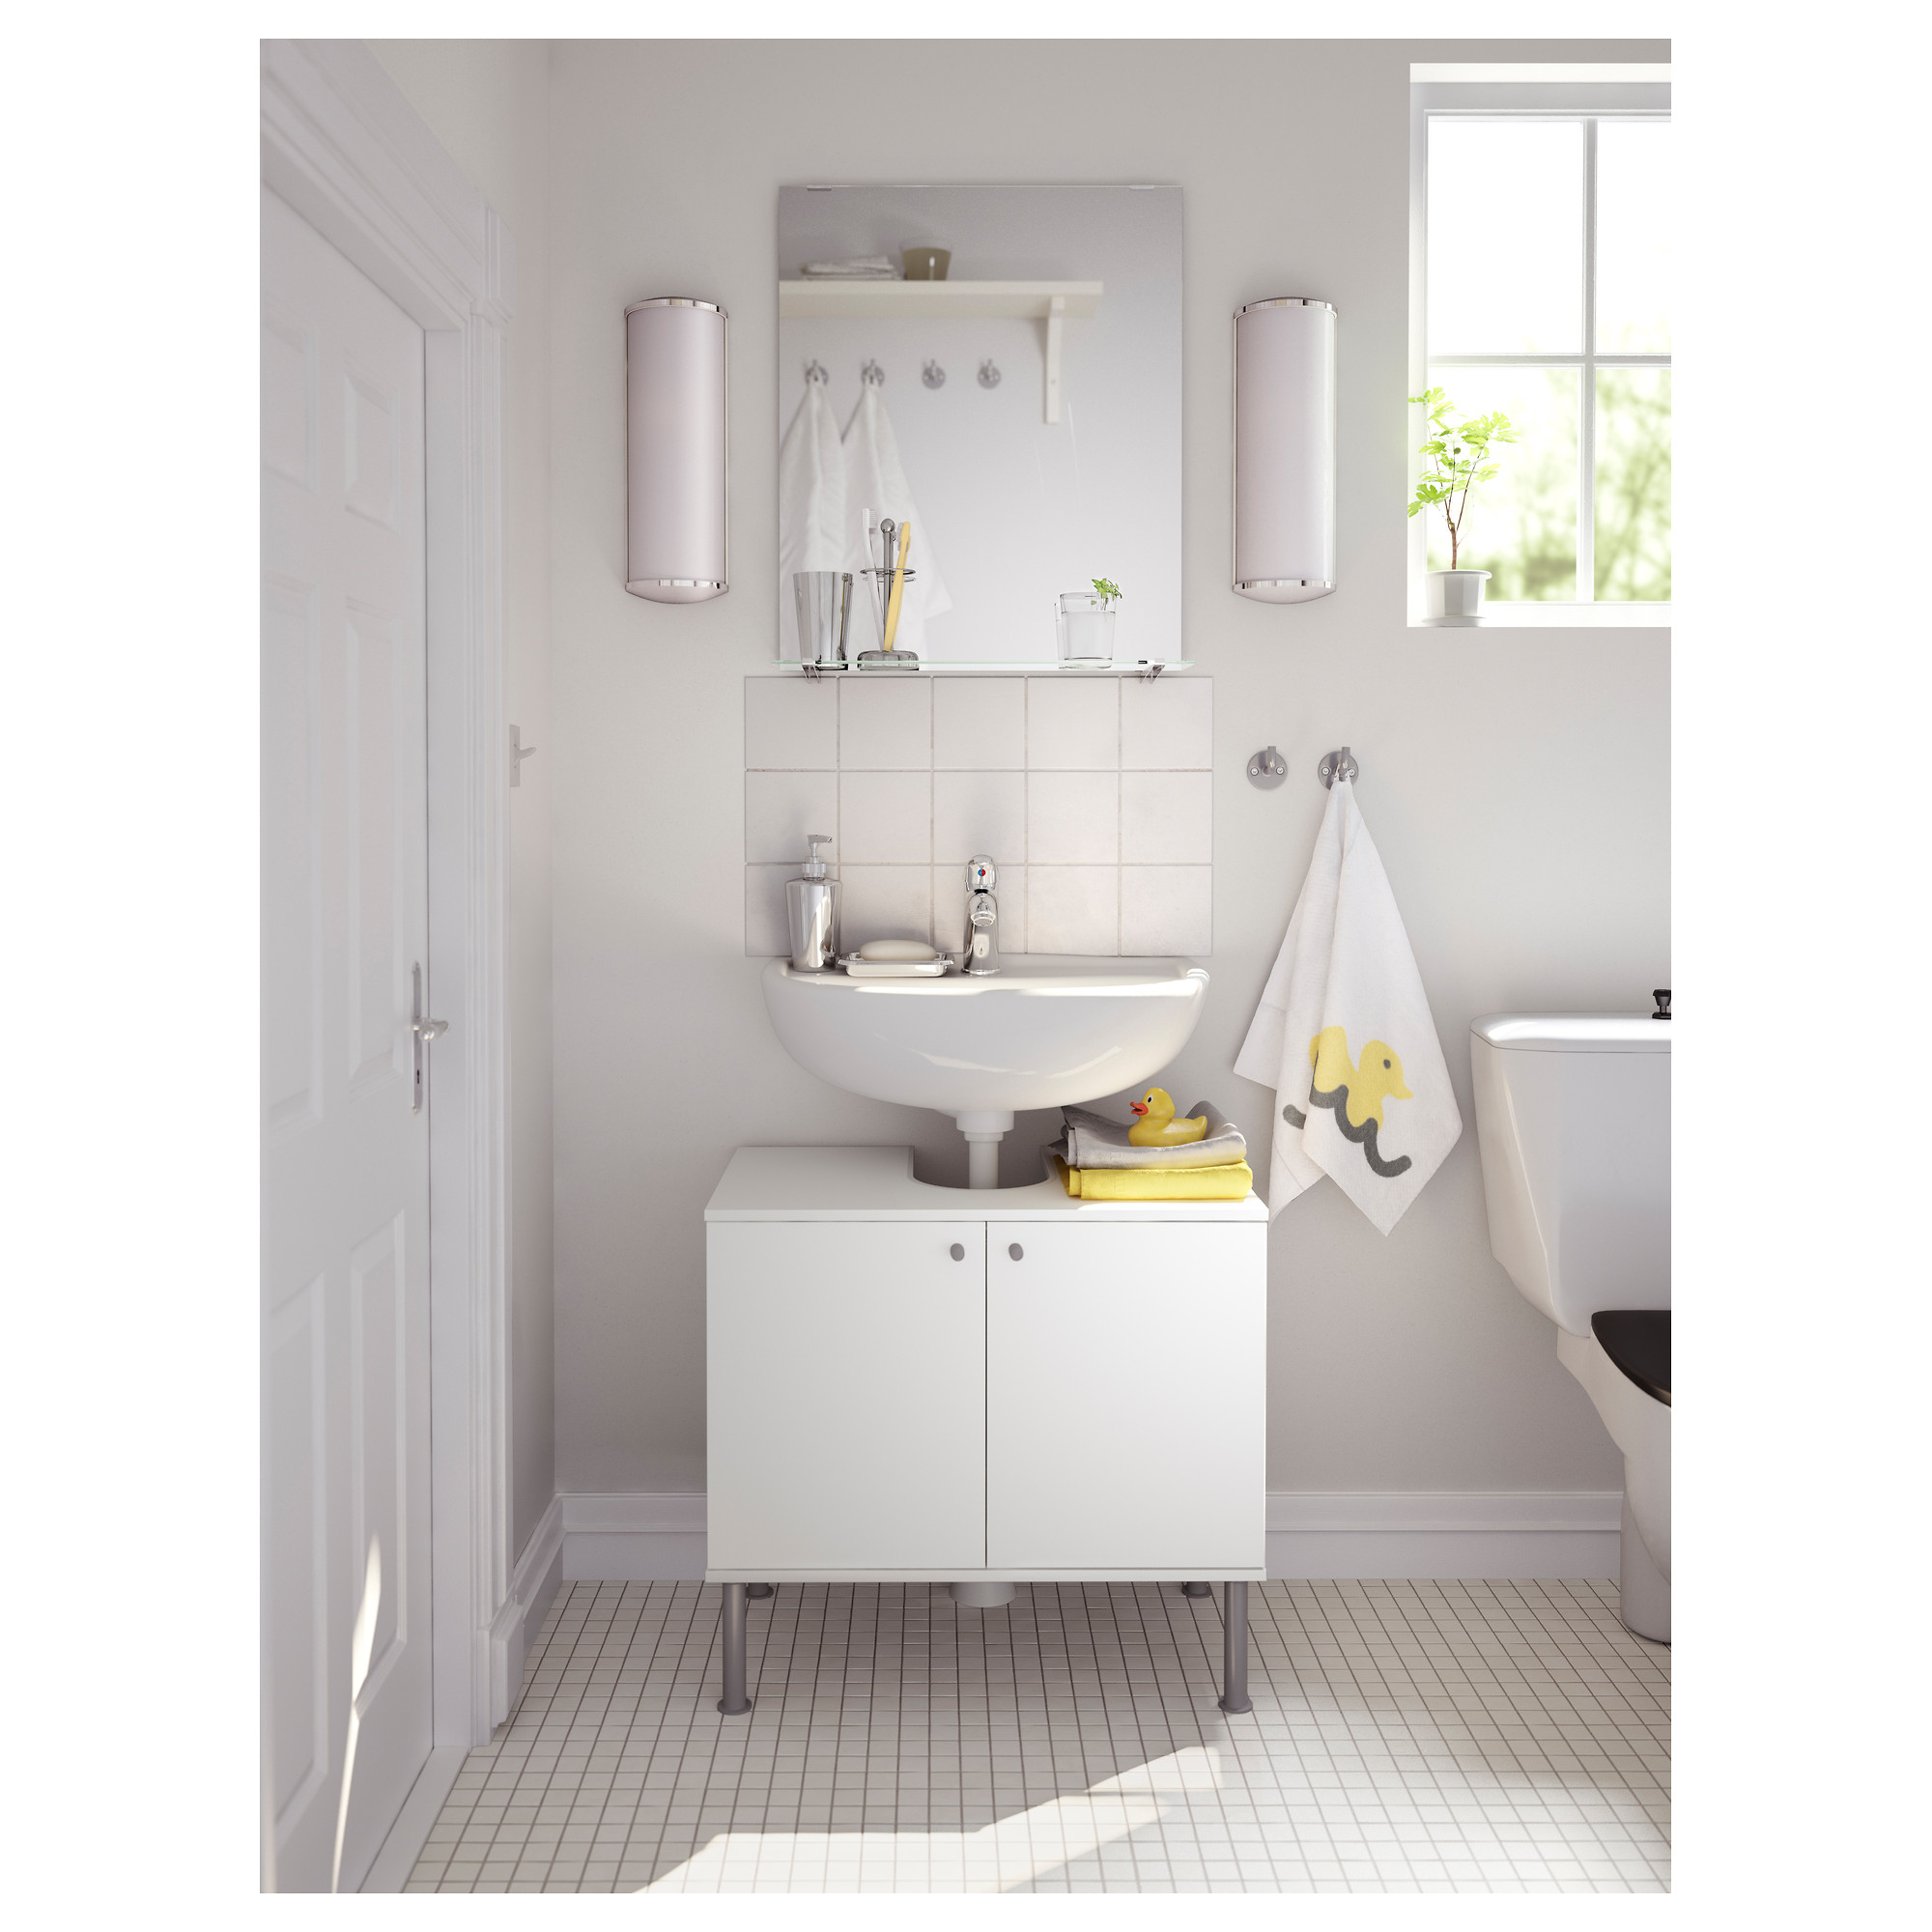 Top 33 Unbeatable Large Bathroom Wall Mirror Funky Mirrors With Regard To Favorite Unusual Large Wall Mirrors (View 16 of 20)